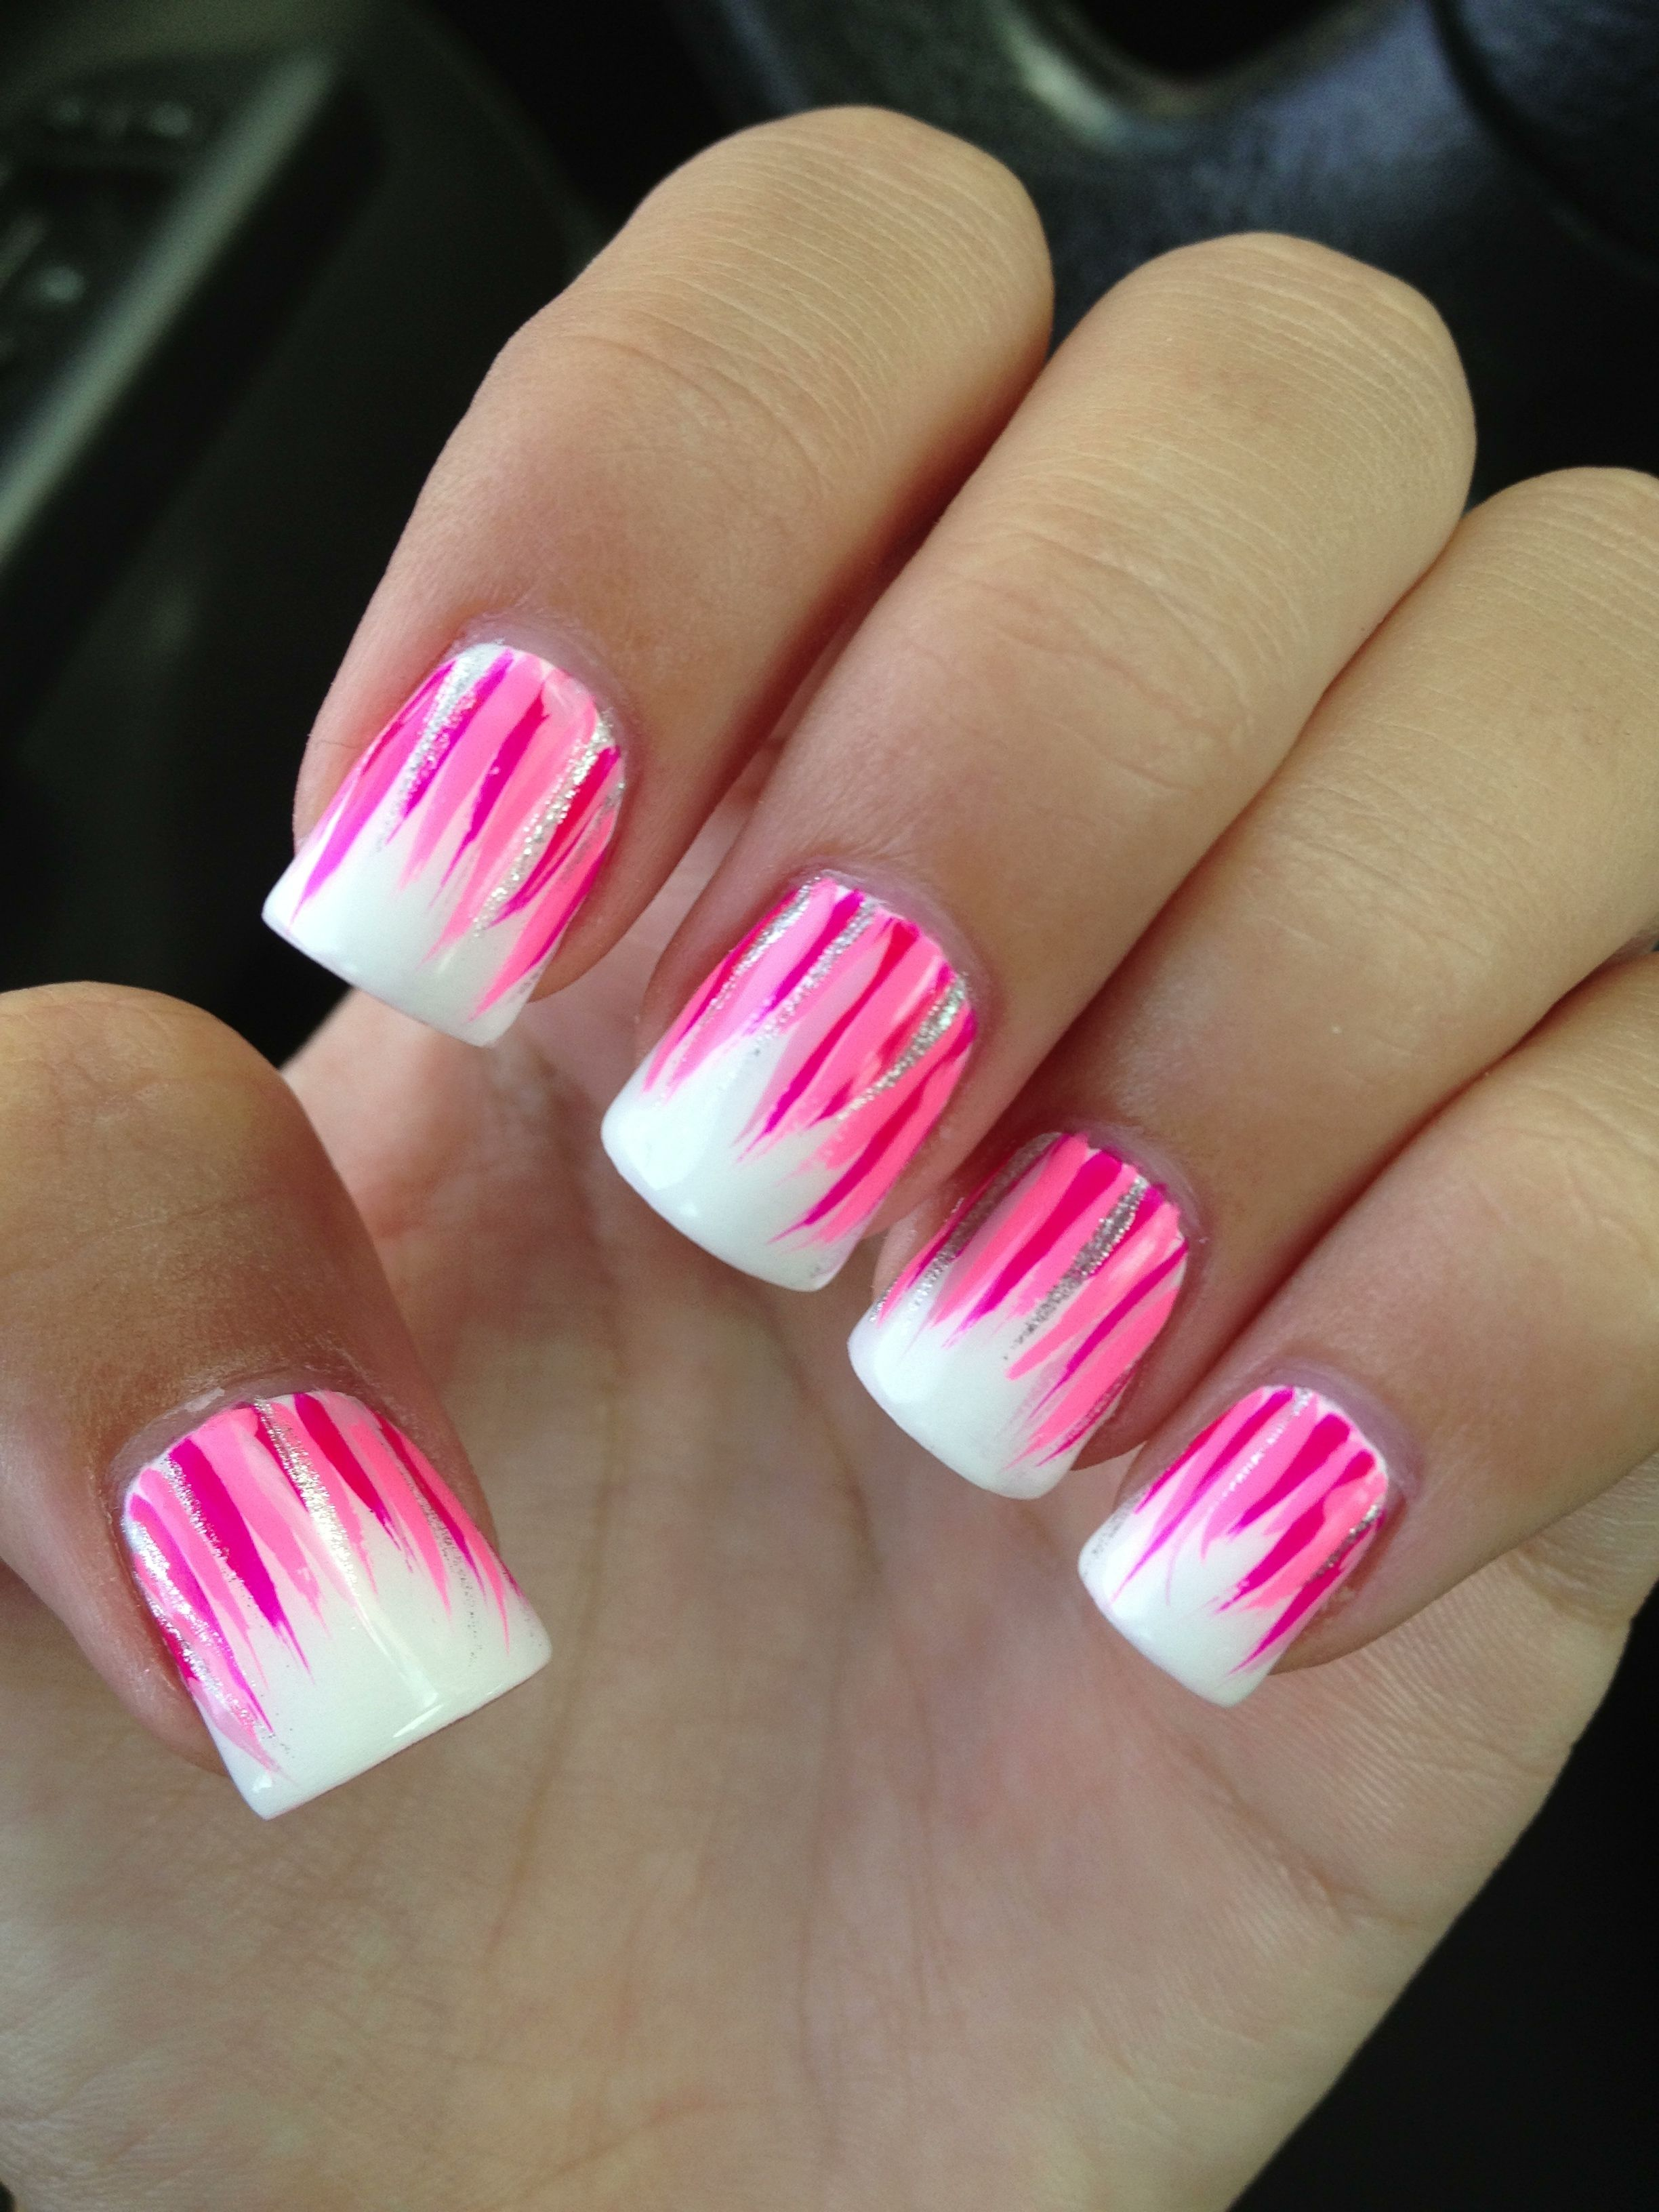 86 Easy Nail Polish Ideas And Designs 2017: 86 Easy Nail Polish Ideas And Designs 2017